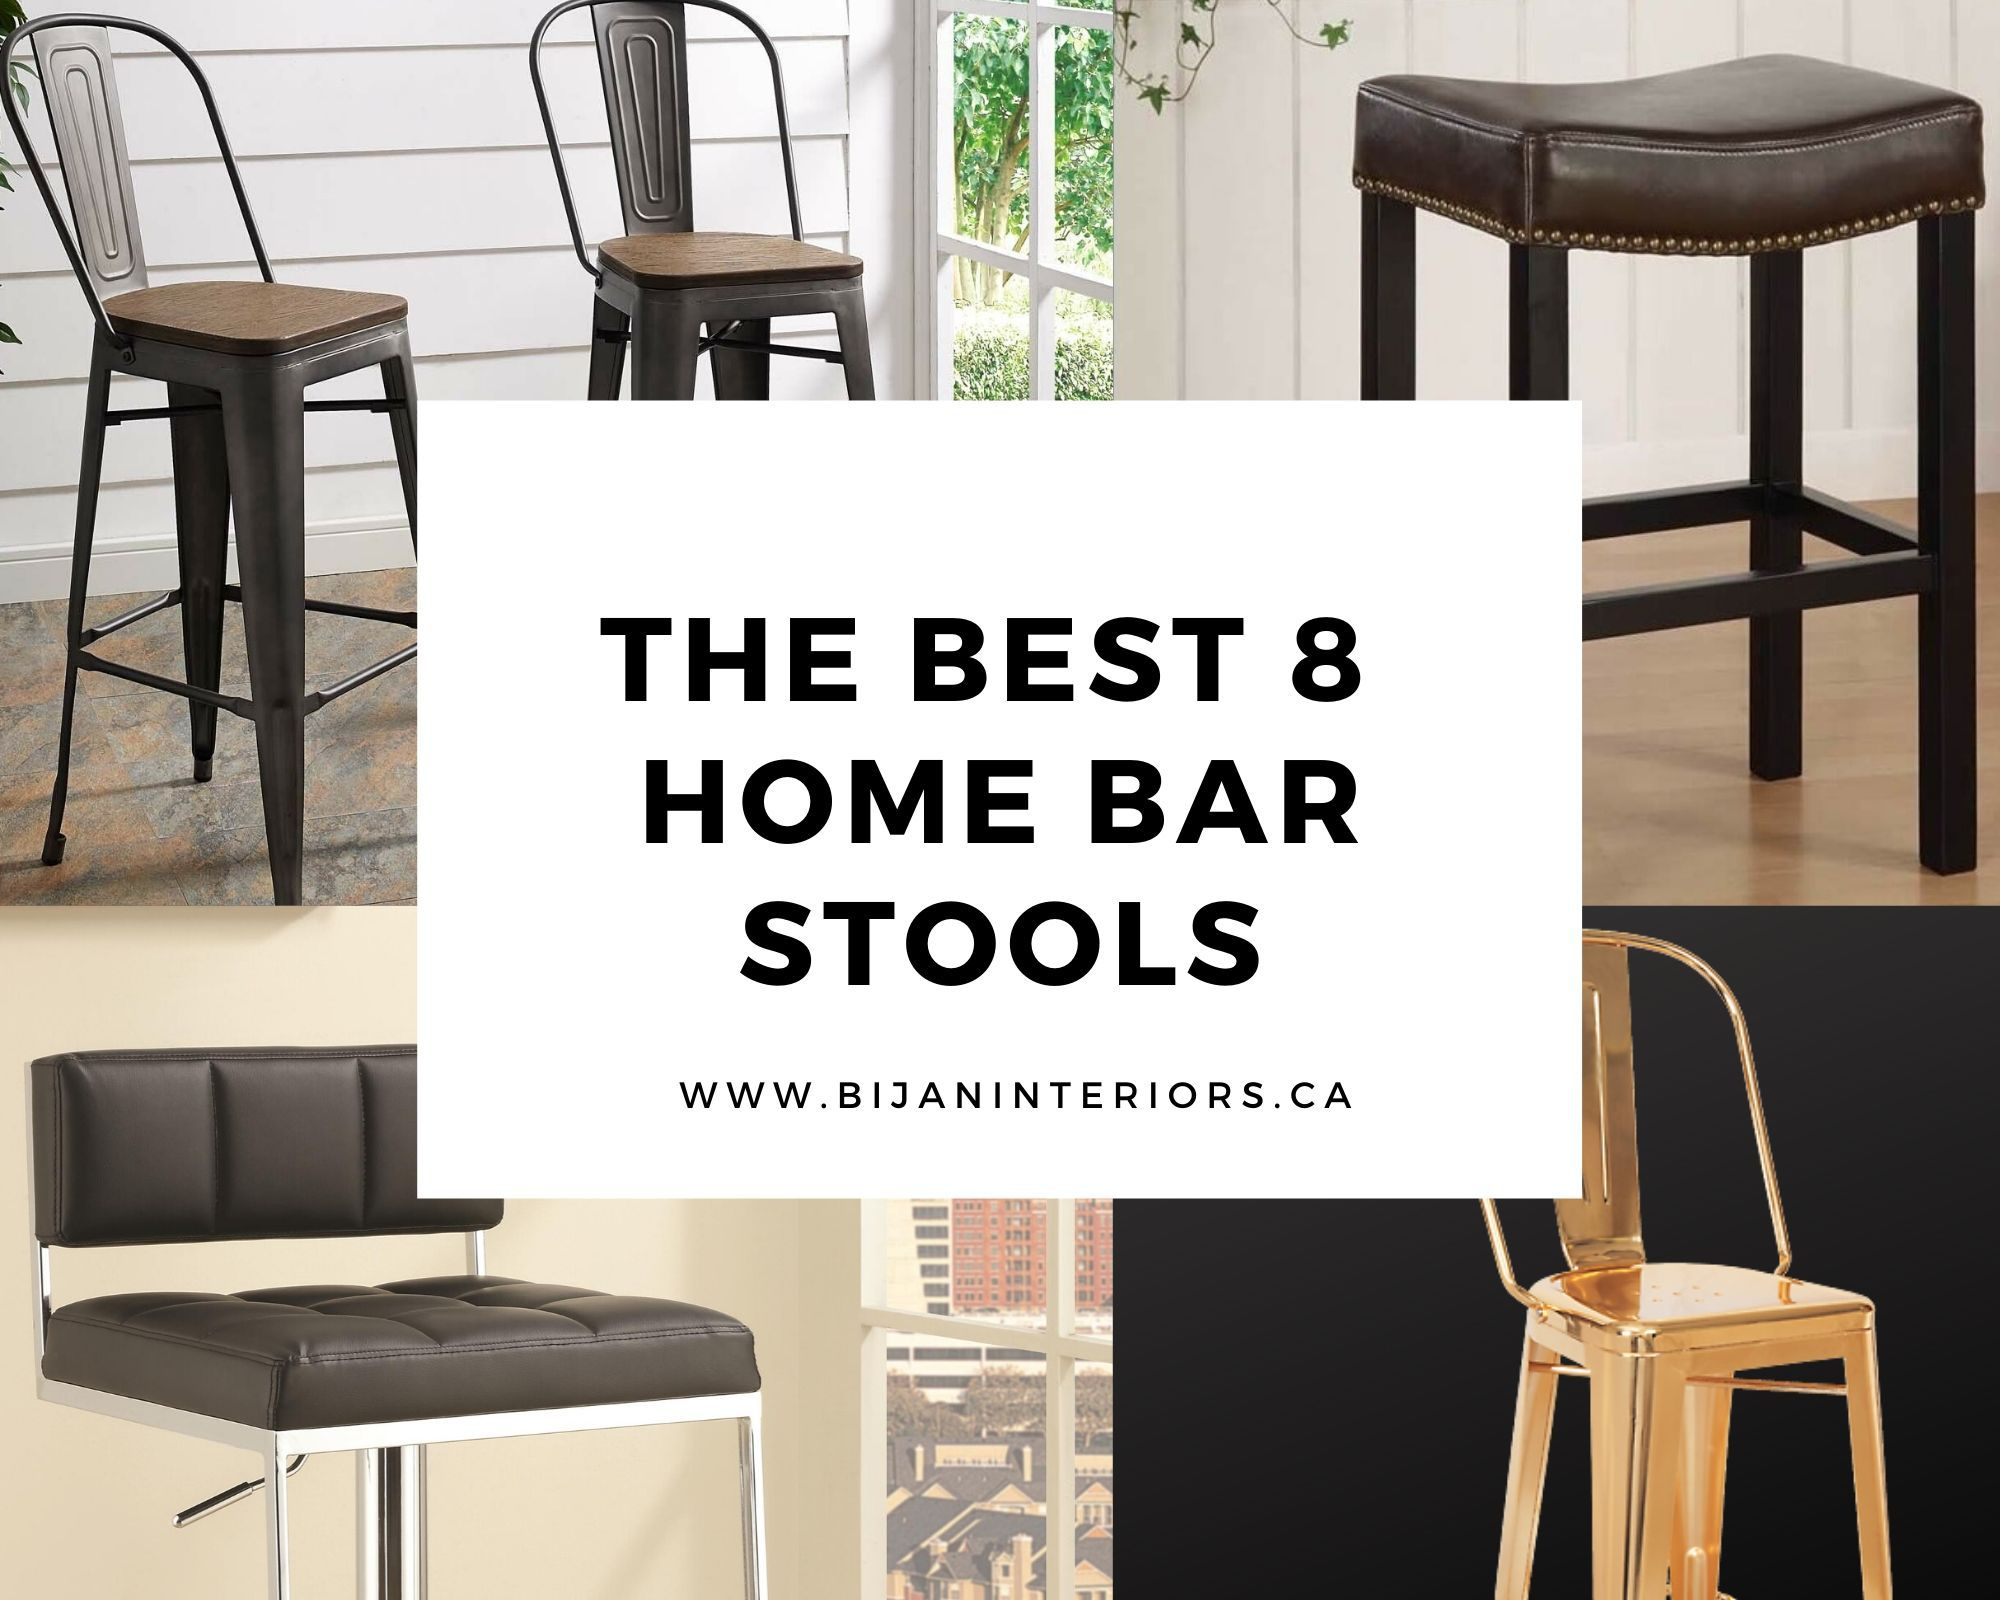 The Best 8 Home Bar Stools